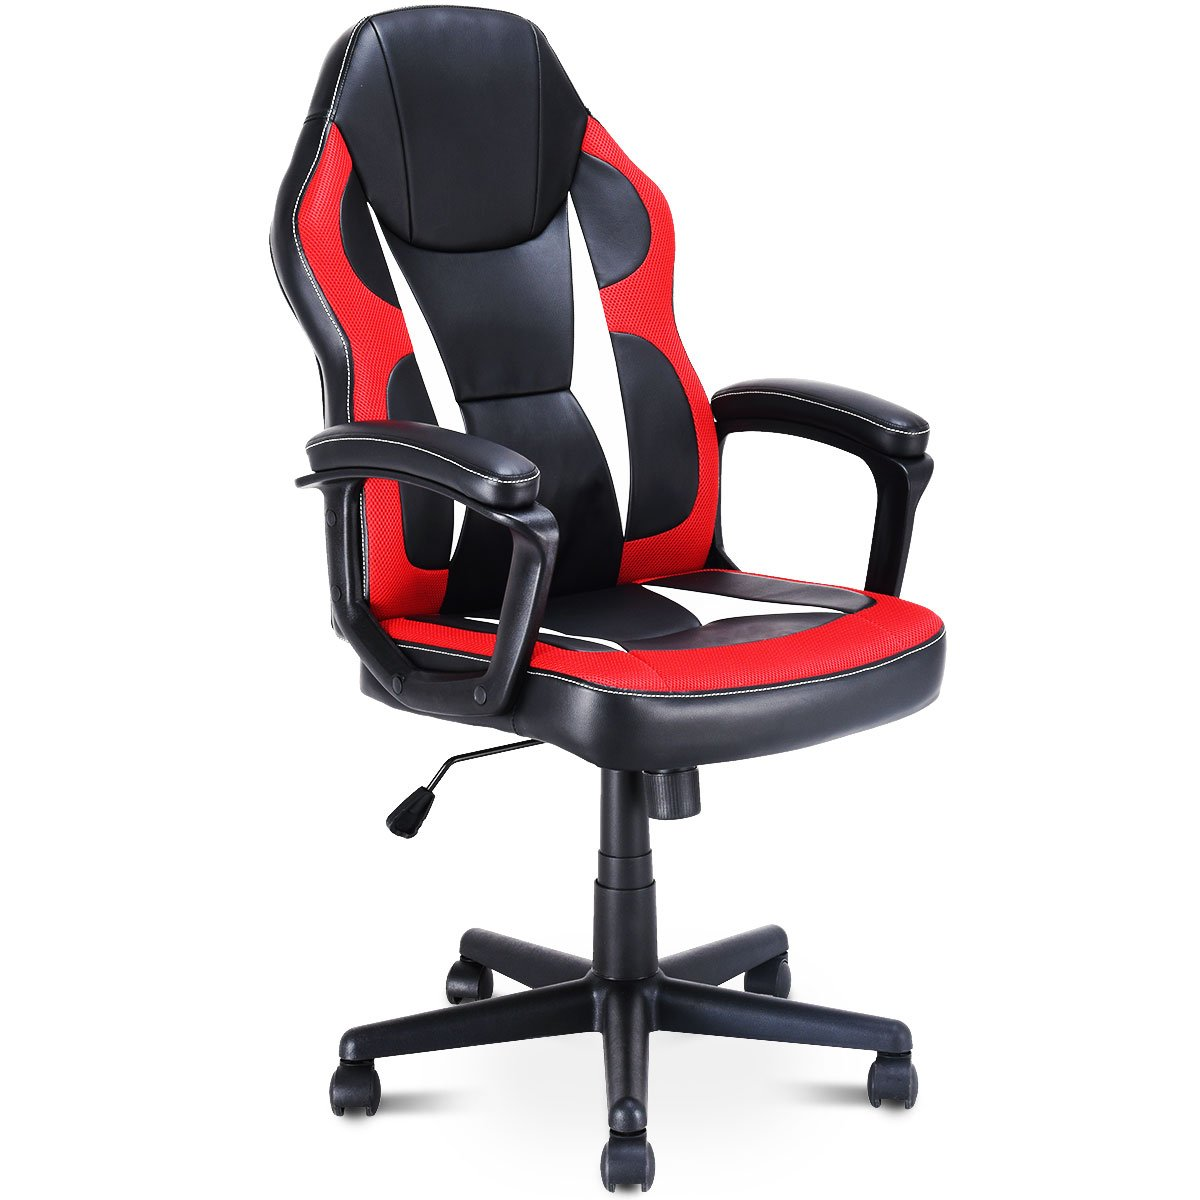 Giantex Gaming Chair Executive Home Office Chair Racing Style Desk Task Computer Chair Swiveling Multidirectional Wheels Adjustable Height Ergonomic Highback Armchair (Style 3)